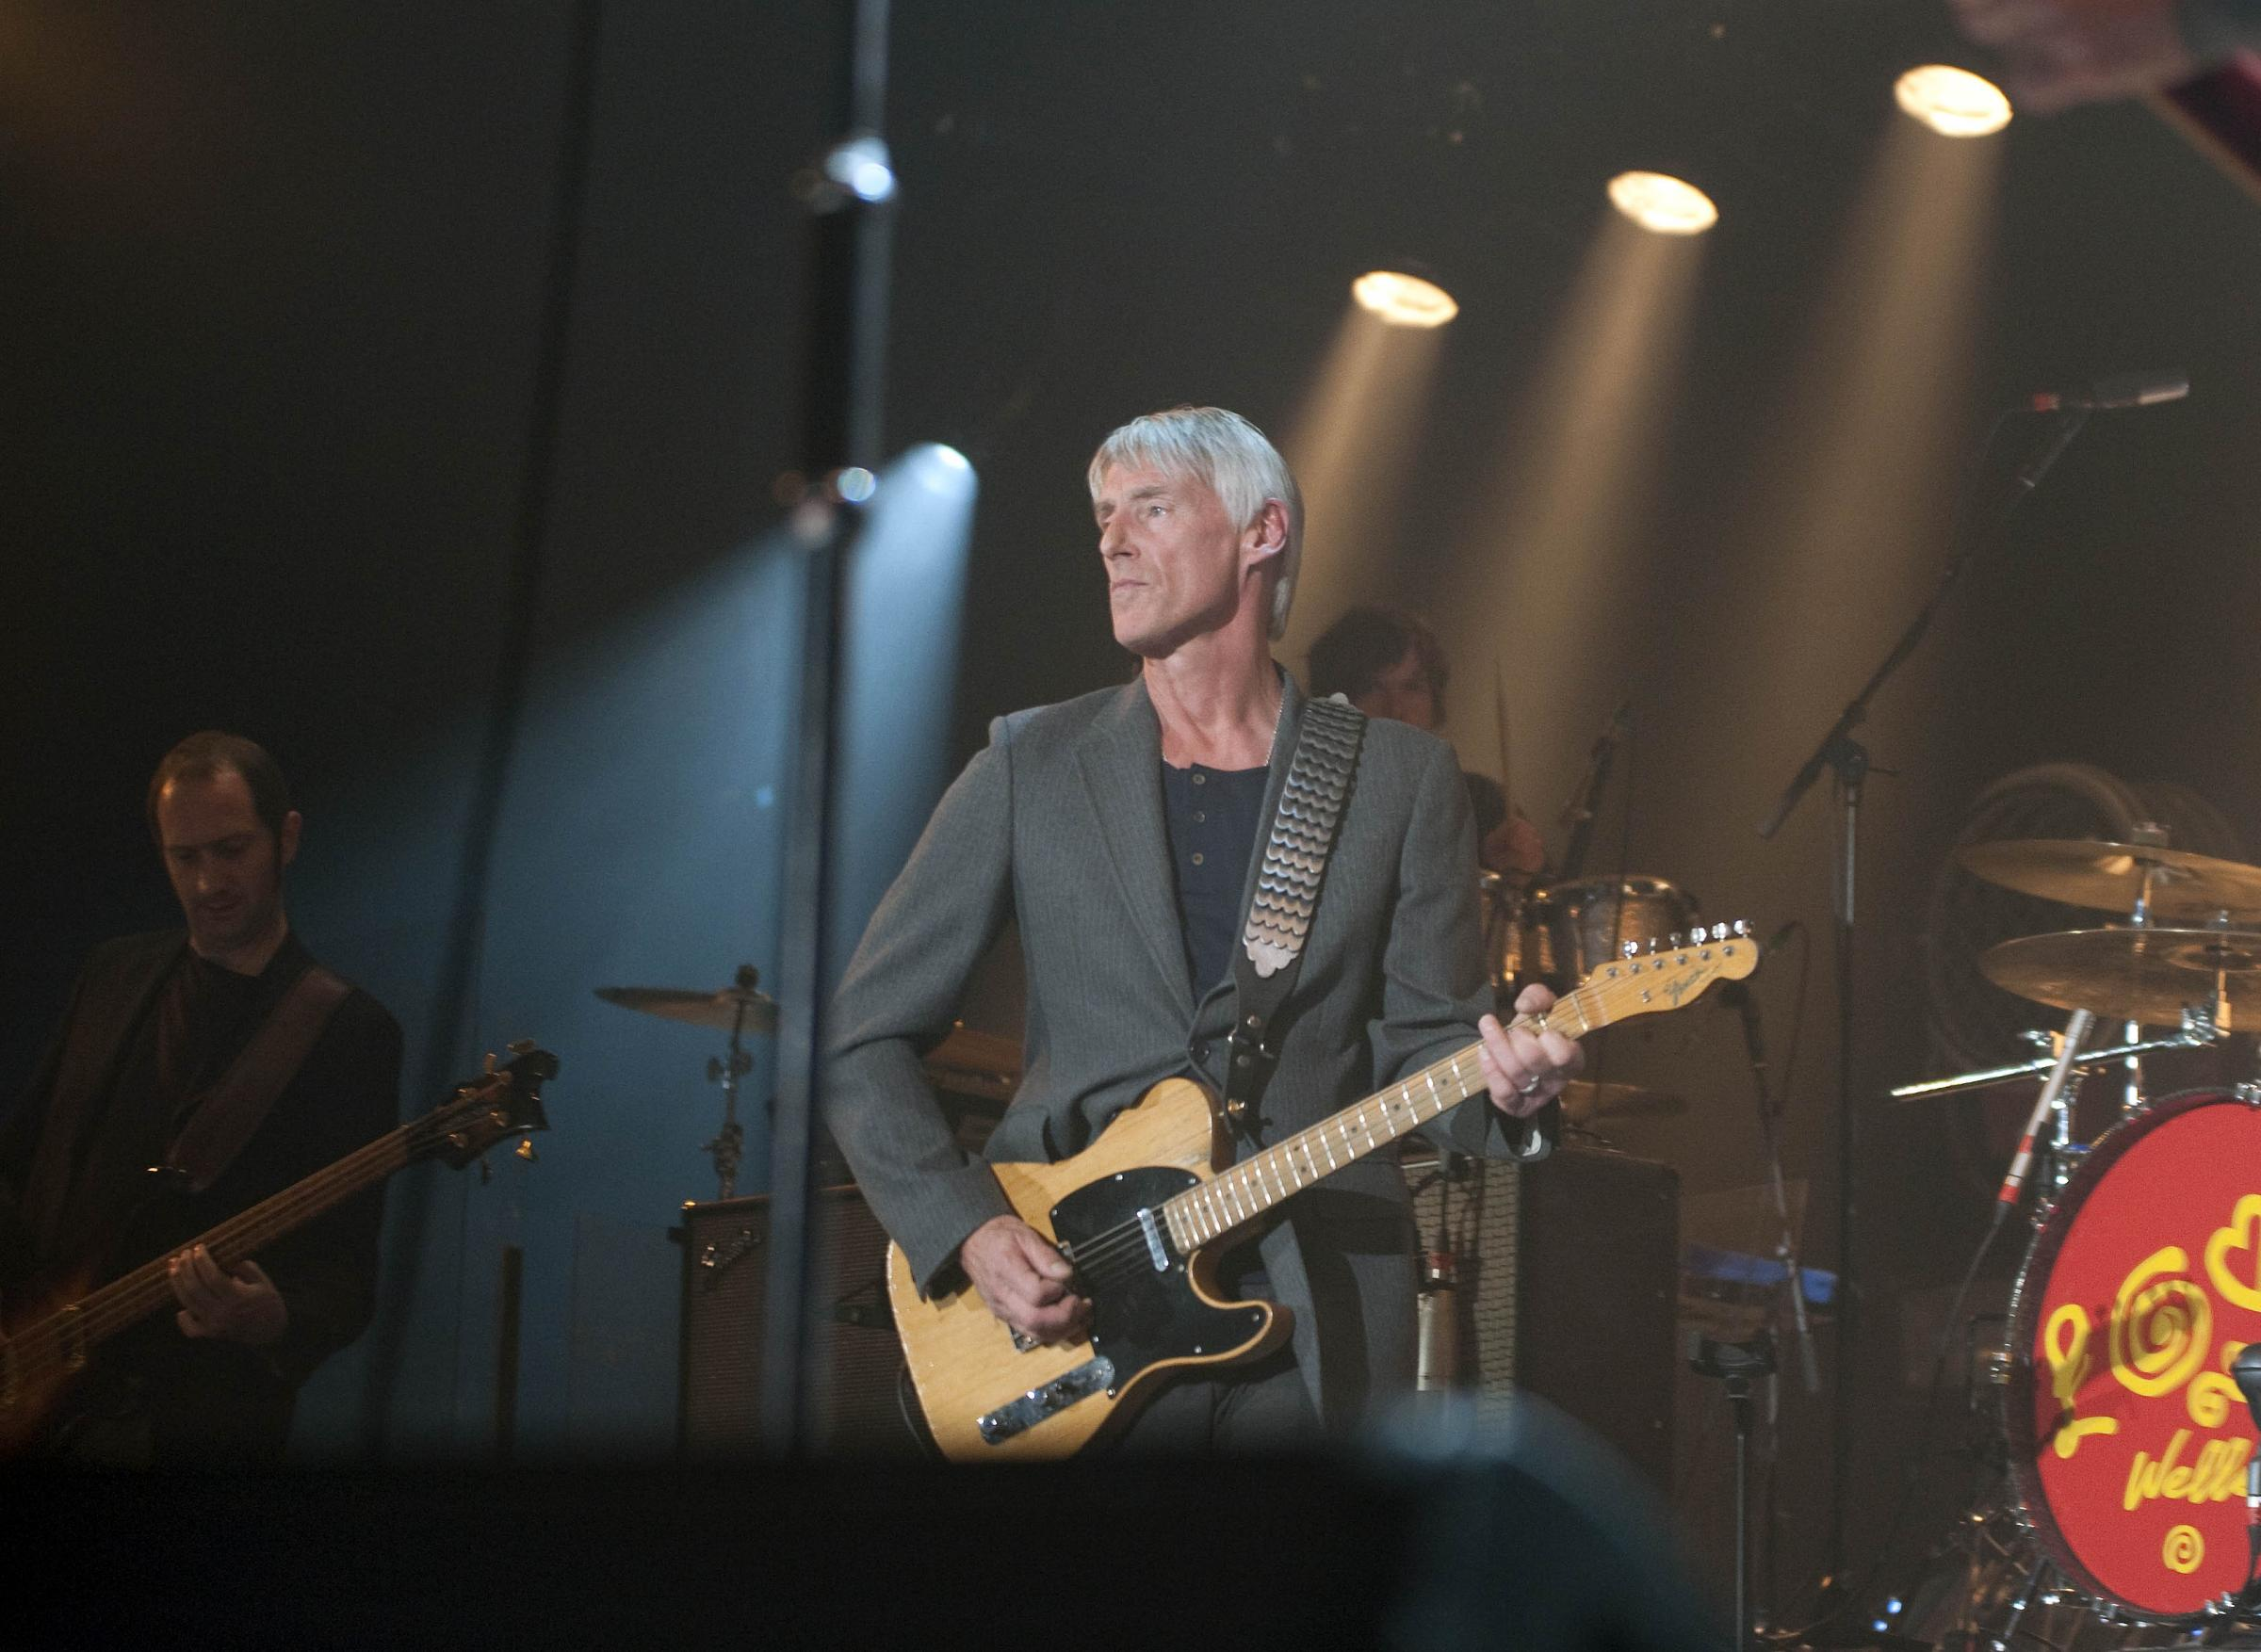 Paul Weller is 60 today. He is pictured on stage during his concert at the Oasis in Swindon in 2015